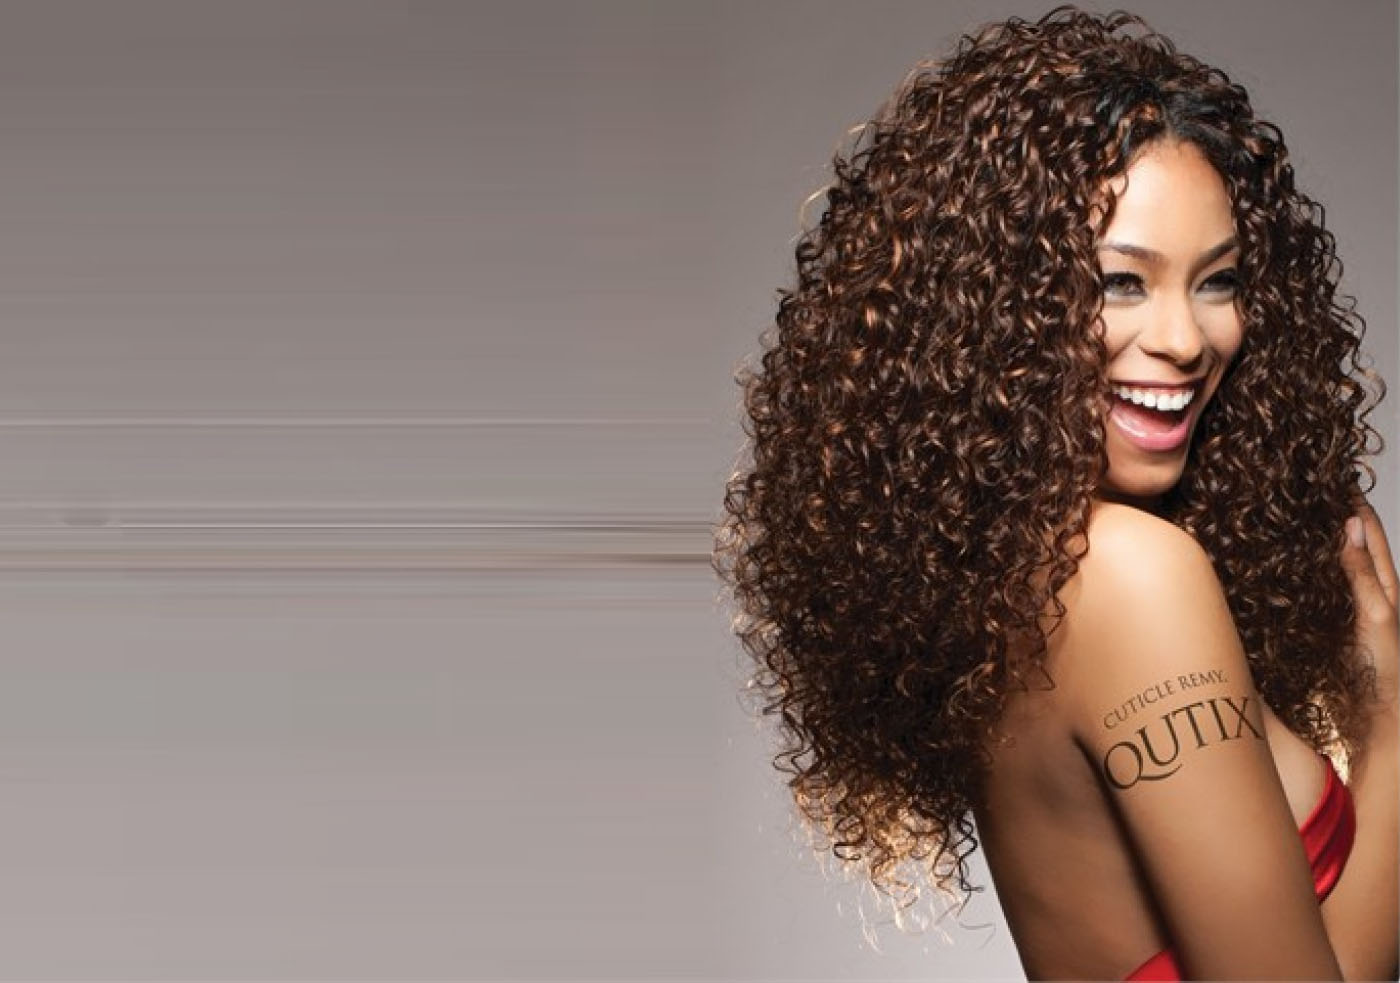 Qutix Beach Curl Zuri Beauty Supply